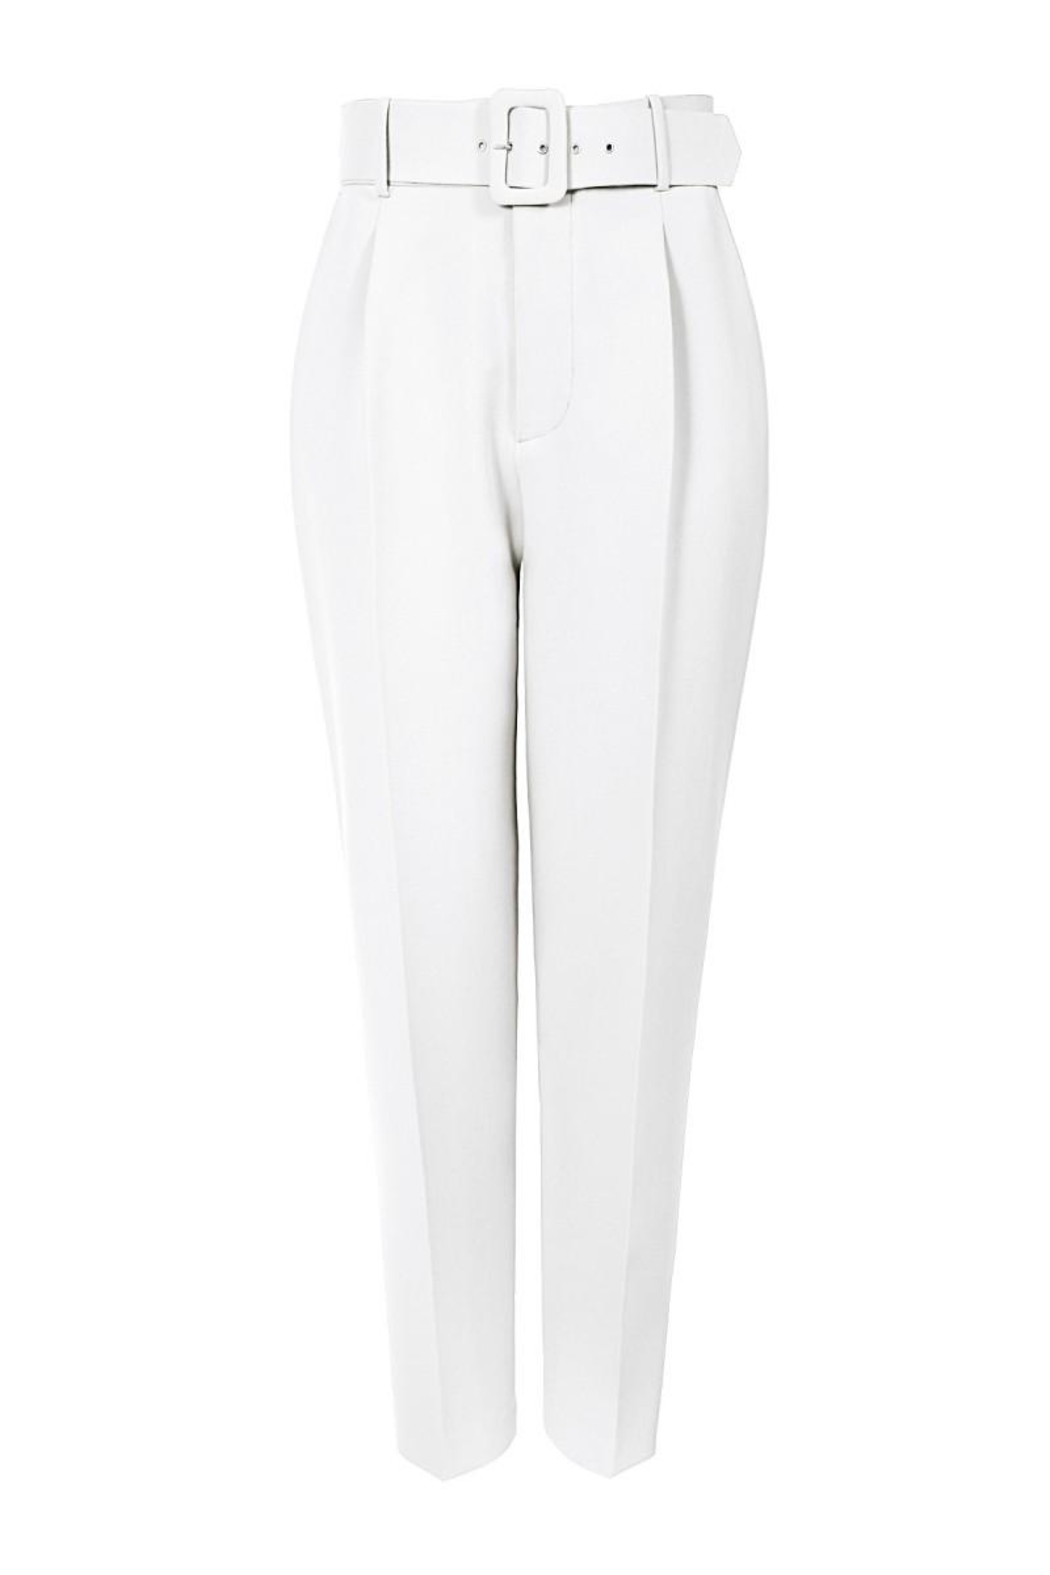 AGGI Pants Tracey Cloud Dancer - Back Cropped Image